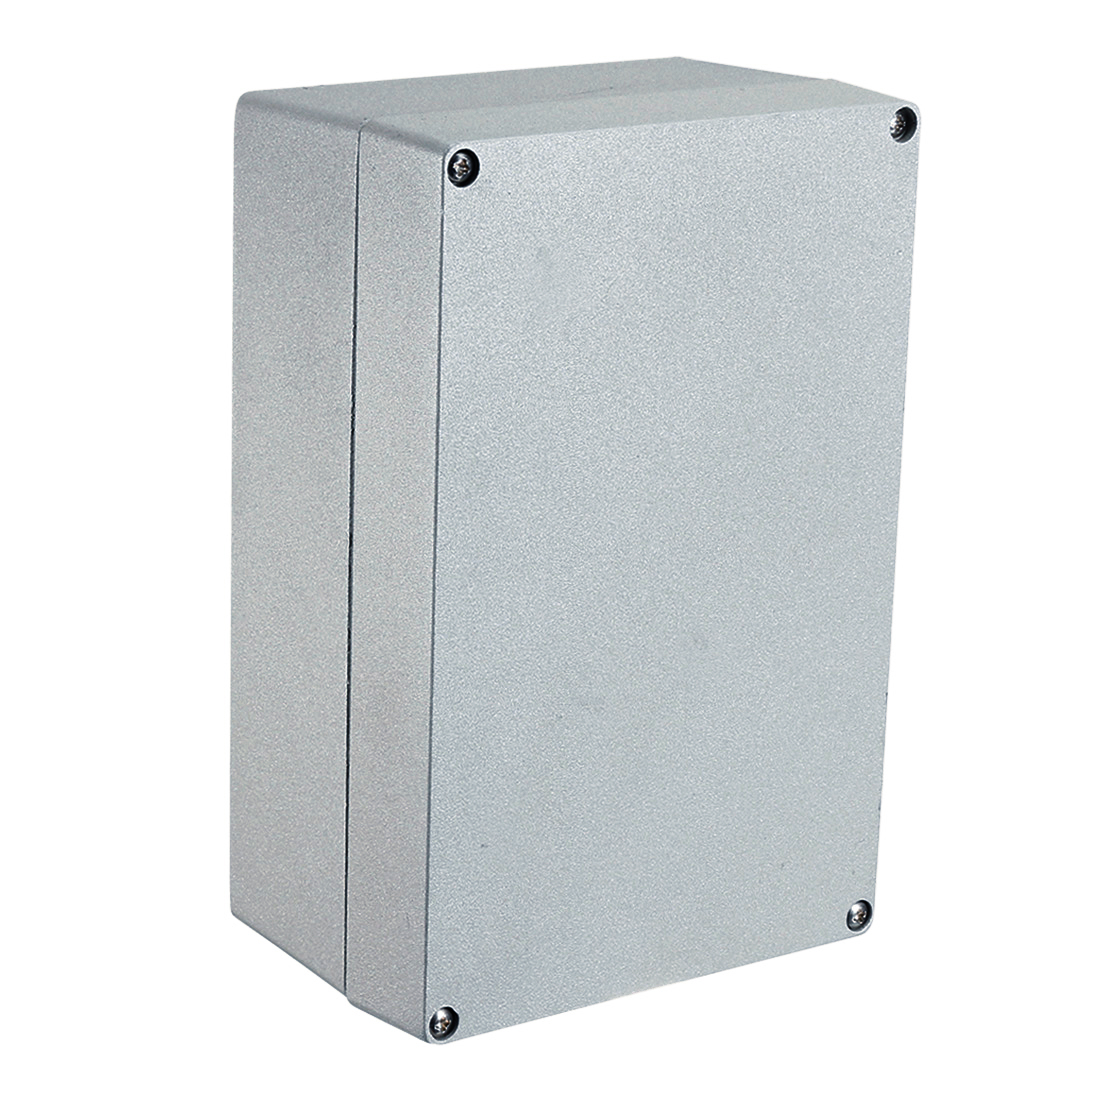 """7.9""""x5.1""""x3.5""""(200mmx130mmx88mm) Aluminum Junction Box Universal Electric Project Enclosure"""